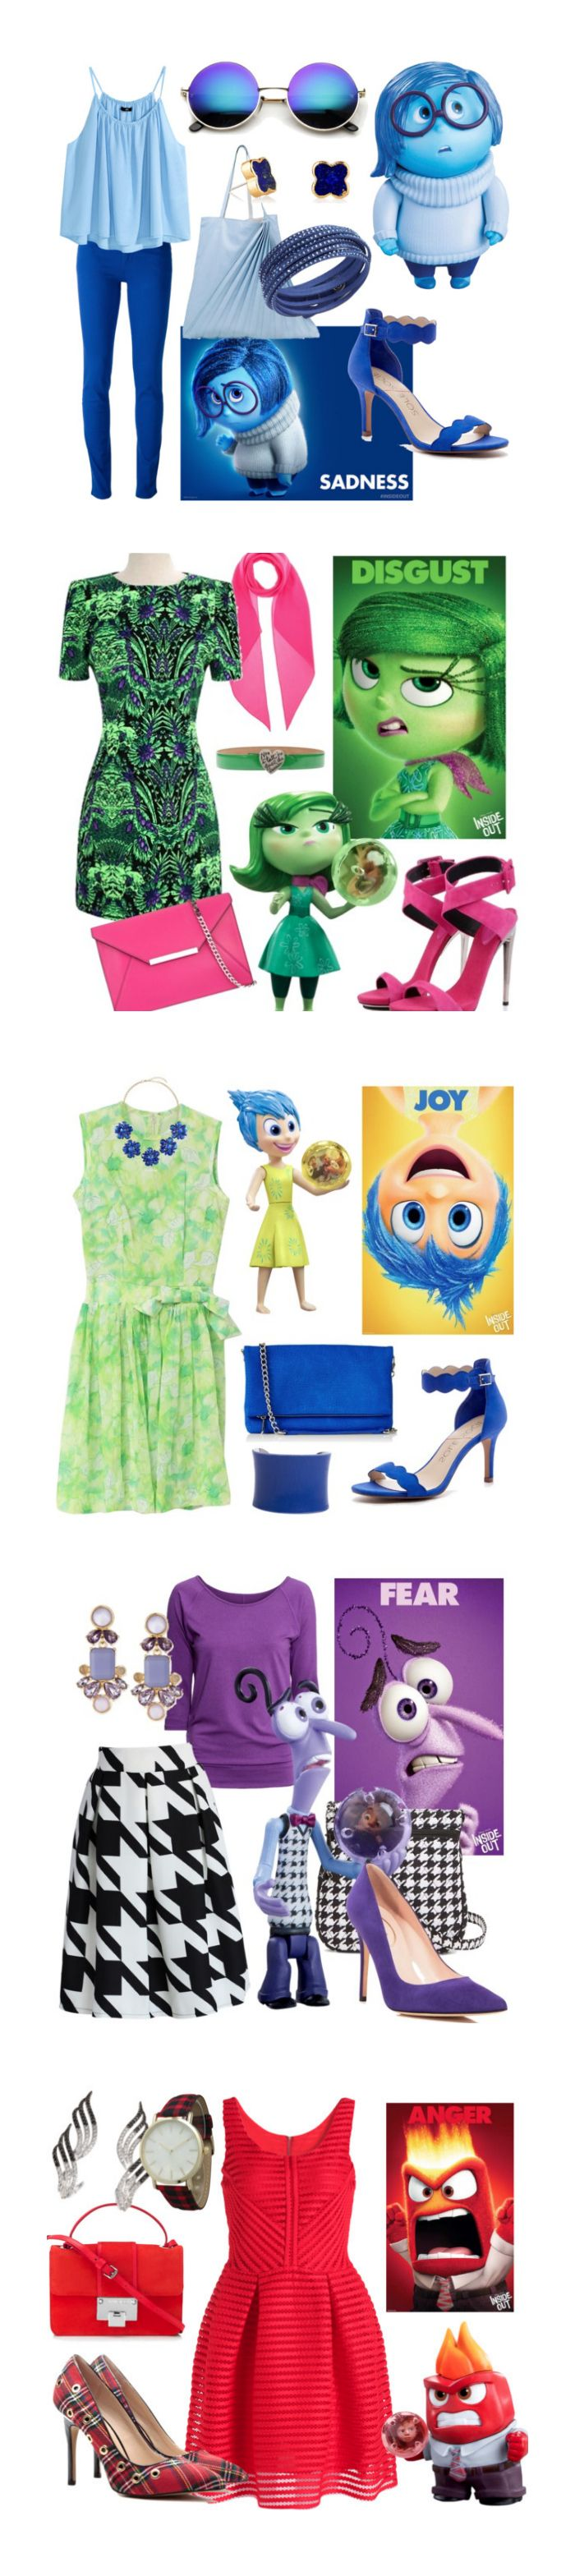 Inside Out Outfits Have not seen yet but will do soon!  - photo studio? Get the kids interacting and thinking about how they're feeling/ who their favourite character was